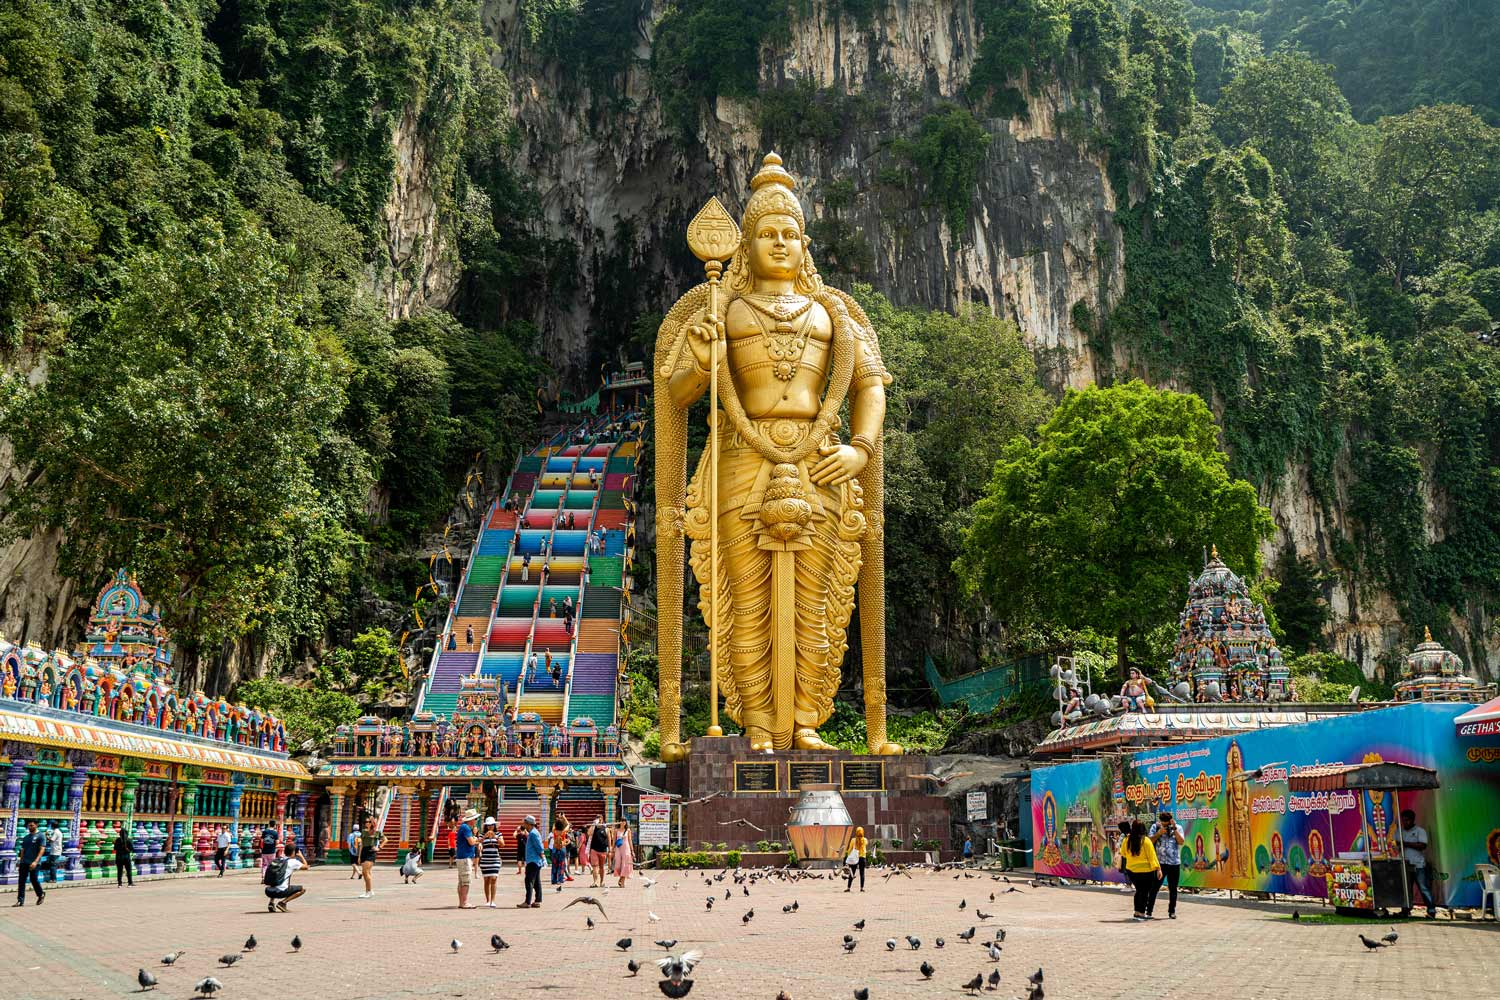 the entrance of the batu caves in kuala lumpur